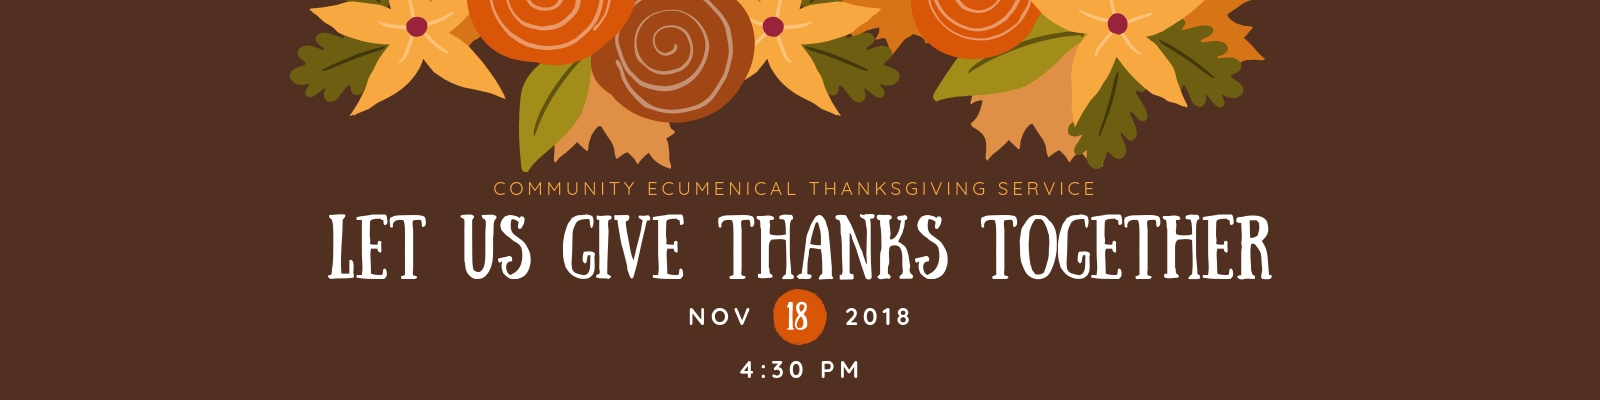 Let Us Give Thanks Together this November 18 at 4:30 pm at an Ecumenical Thanksgiving Service at St John Lutheran Church